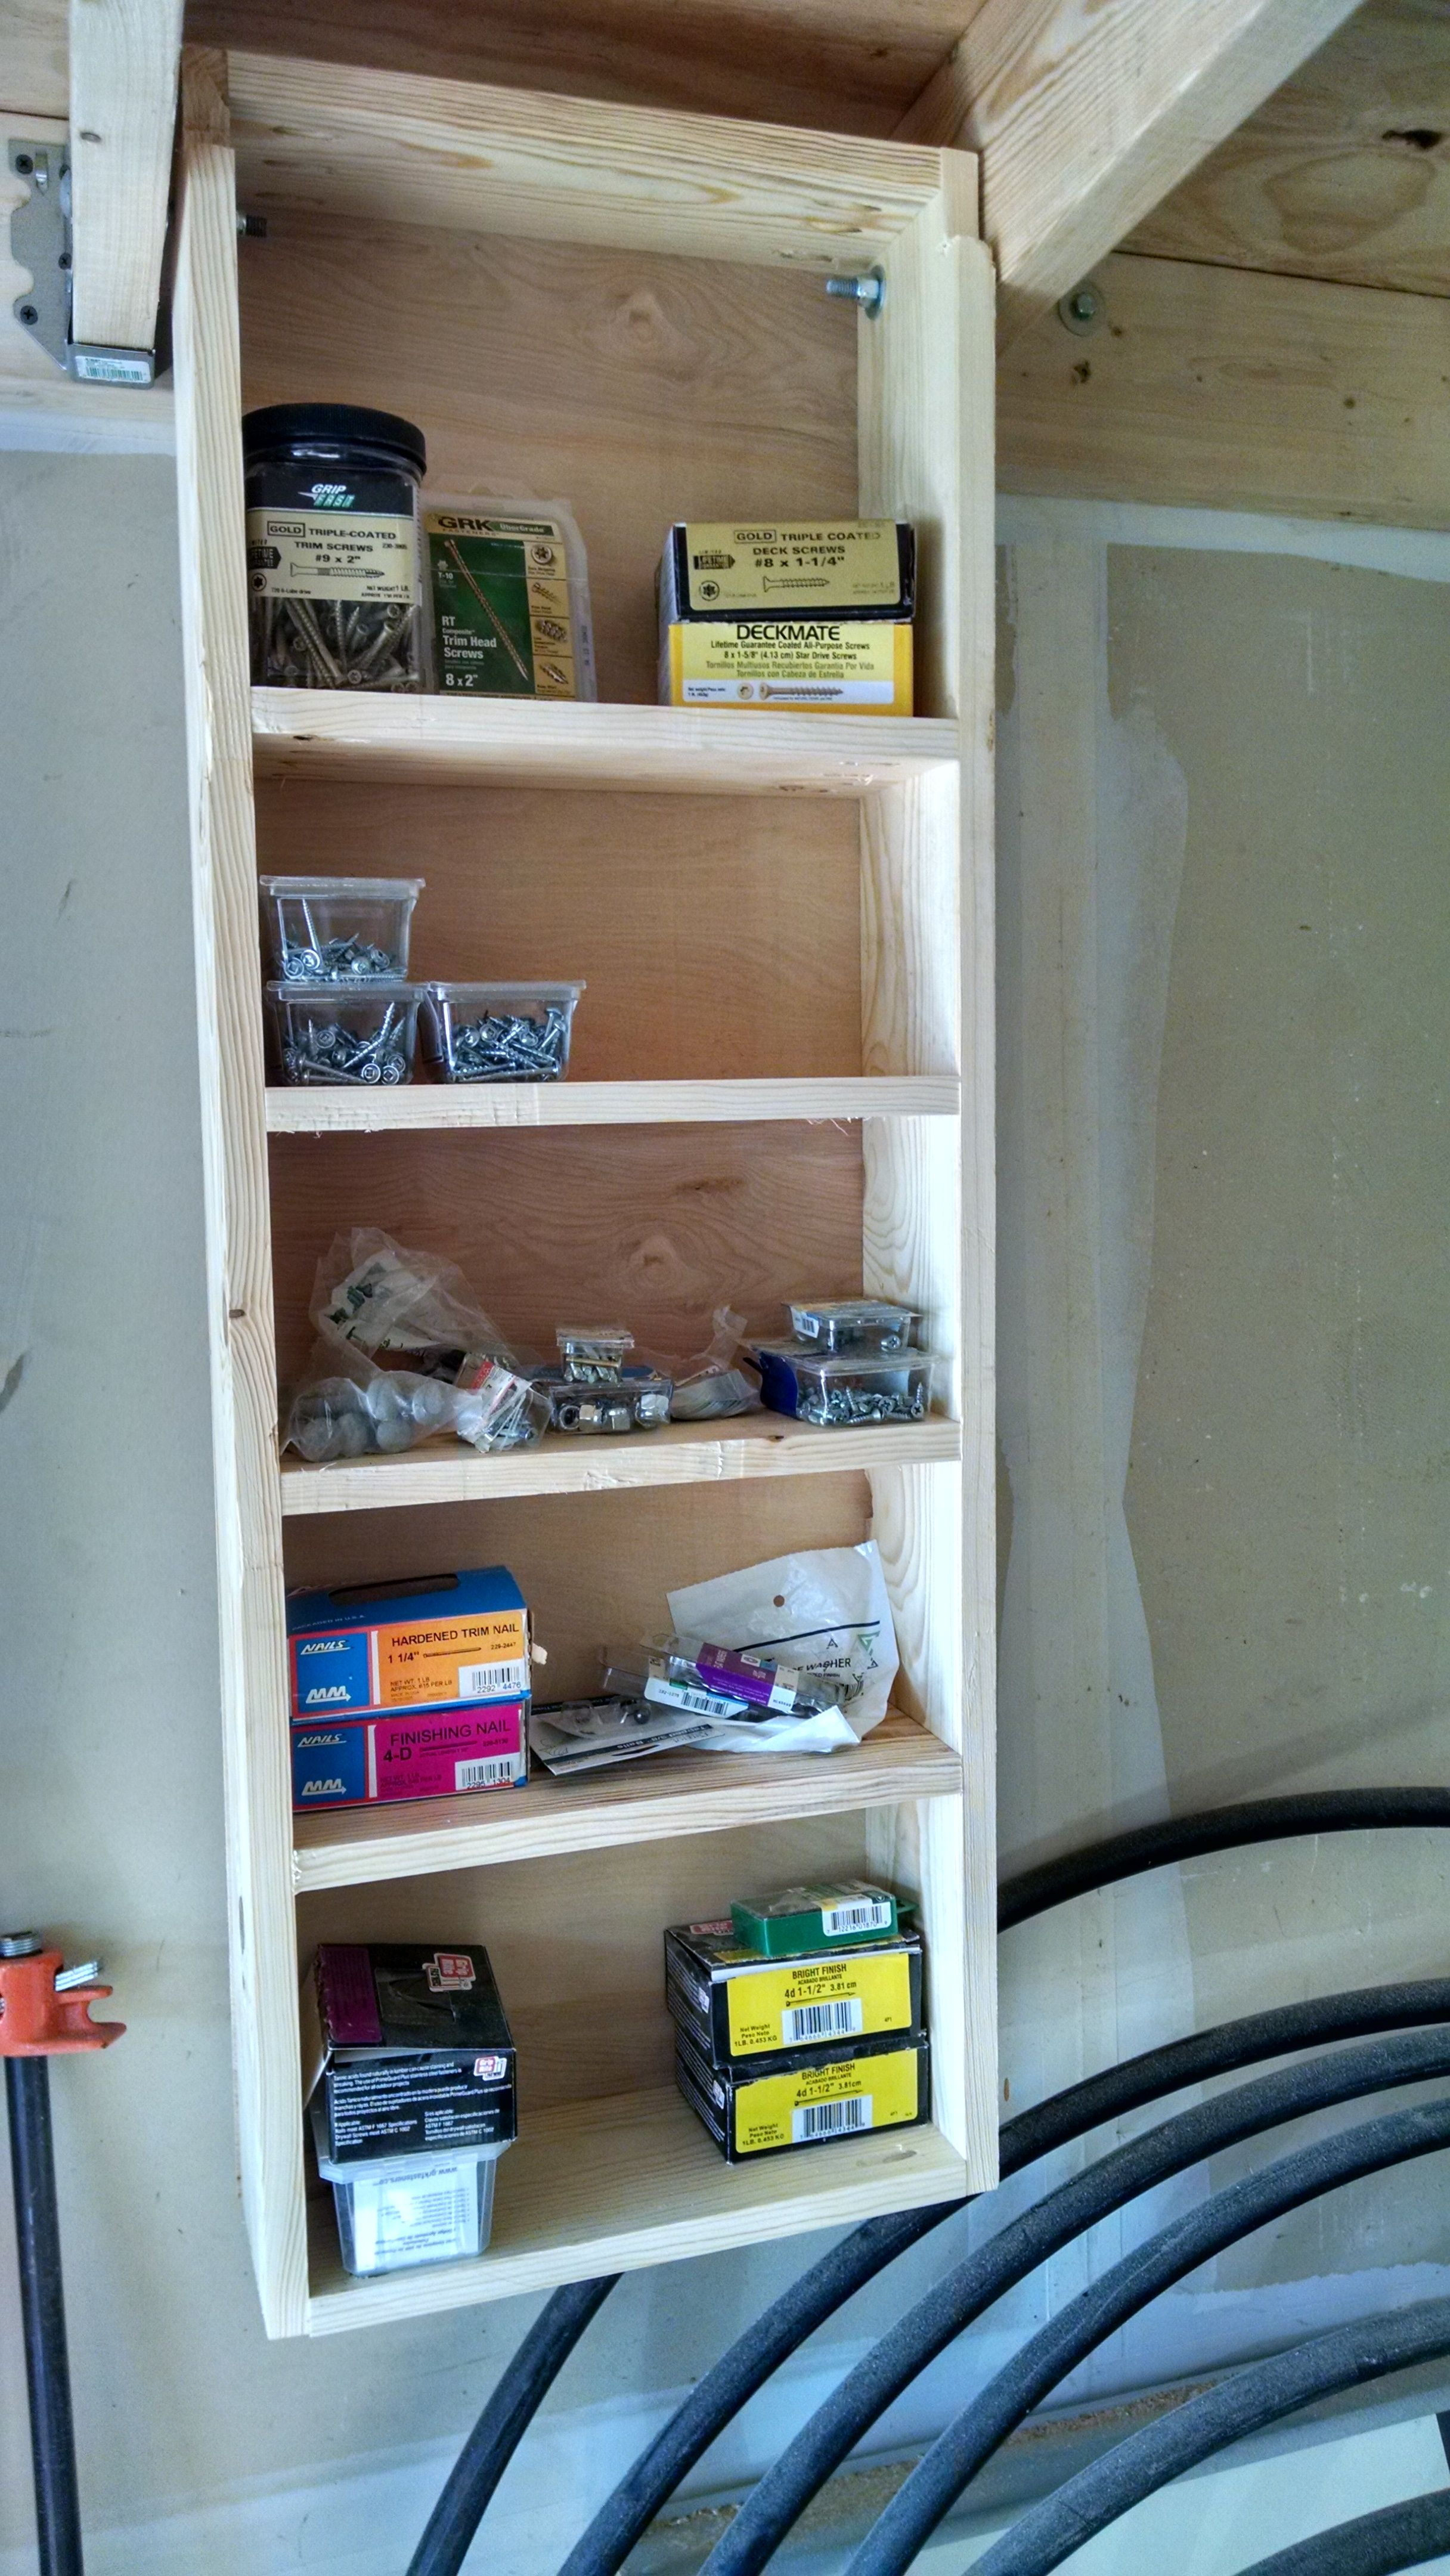 Garage Storage Solution, A Fold Down/ Up Shelf That Folds Into The Rafters.